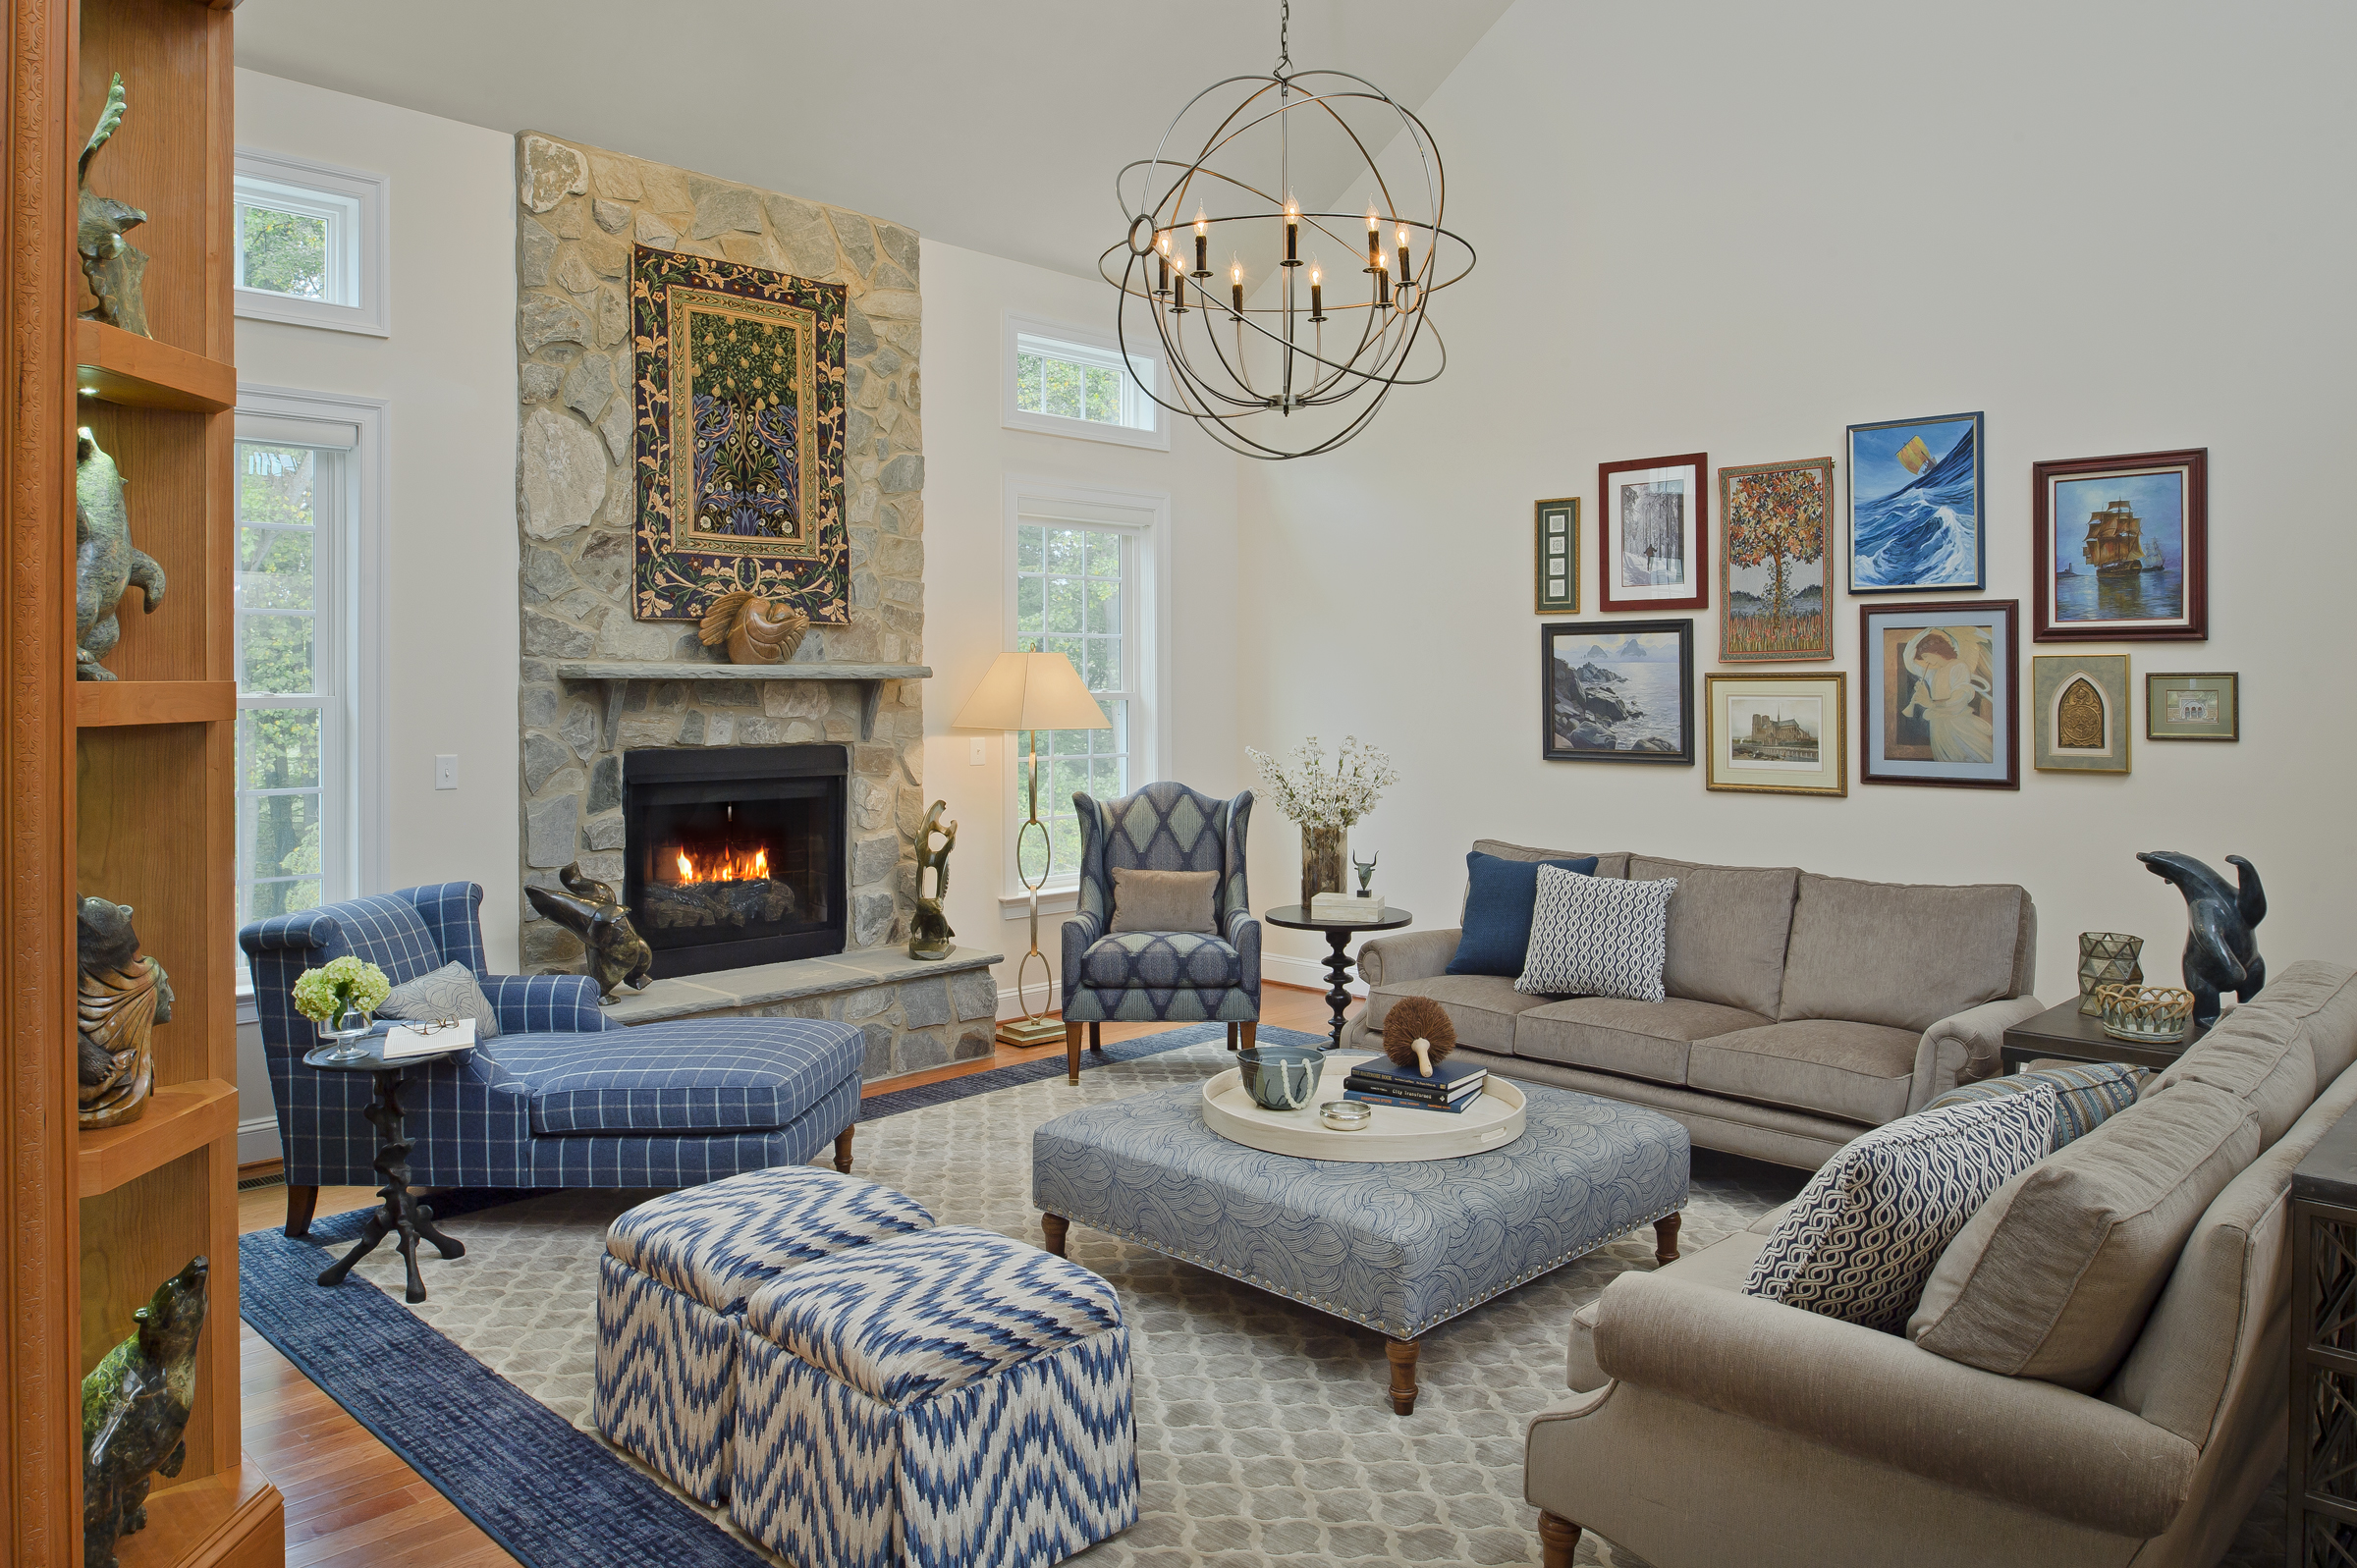 Cozy Blue Great Room Family Room Interior Design Baltimore Maryland